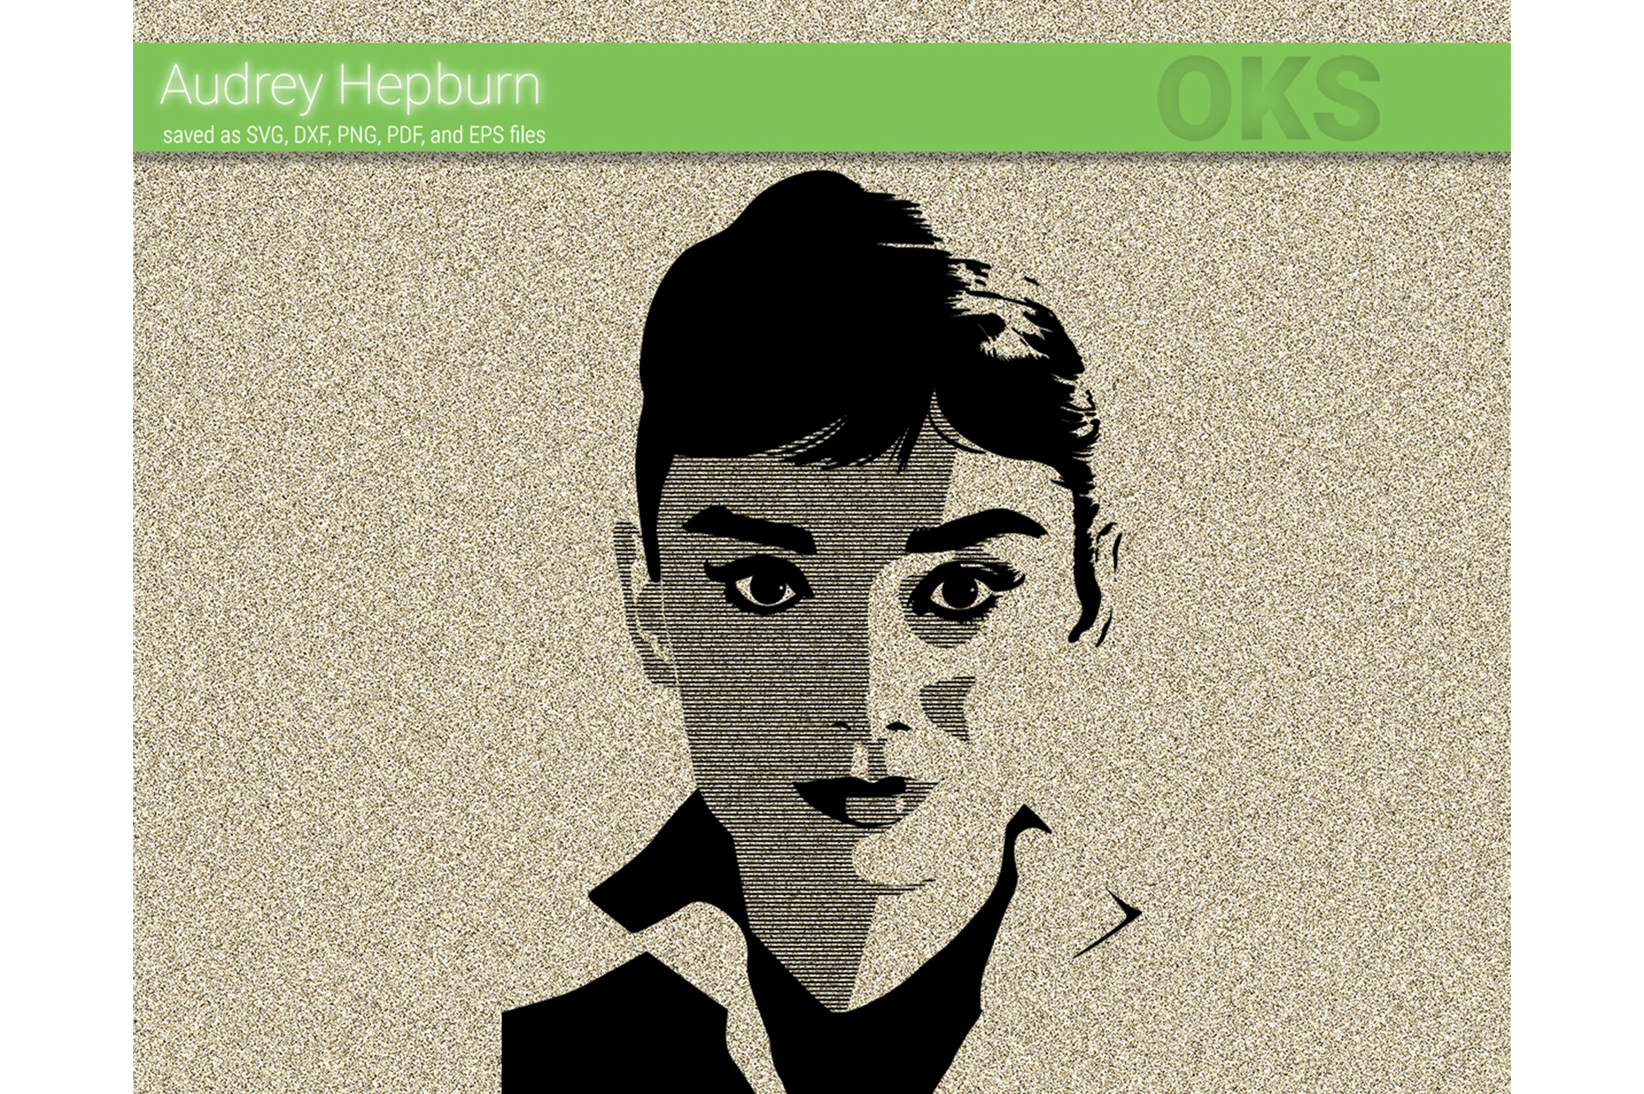 Download Free Audrey Hepburn Vector Graphic By Crafteroks Creative Fabrica for Cricut Explore, Silhouette and other cutting machines.